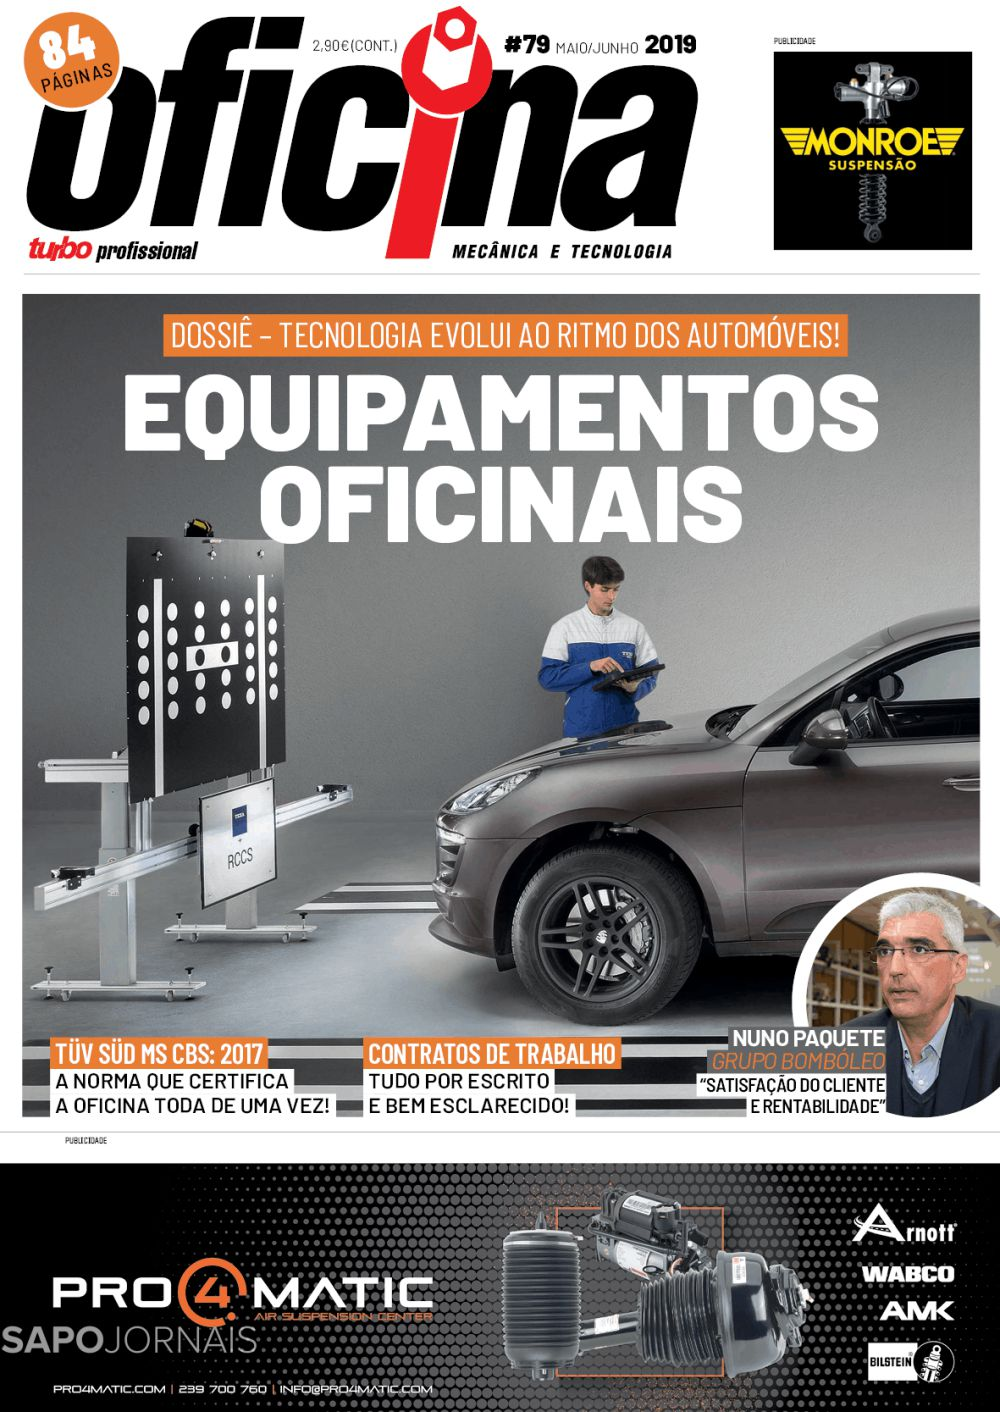 Capa da Revista Turbo Oficina